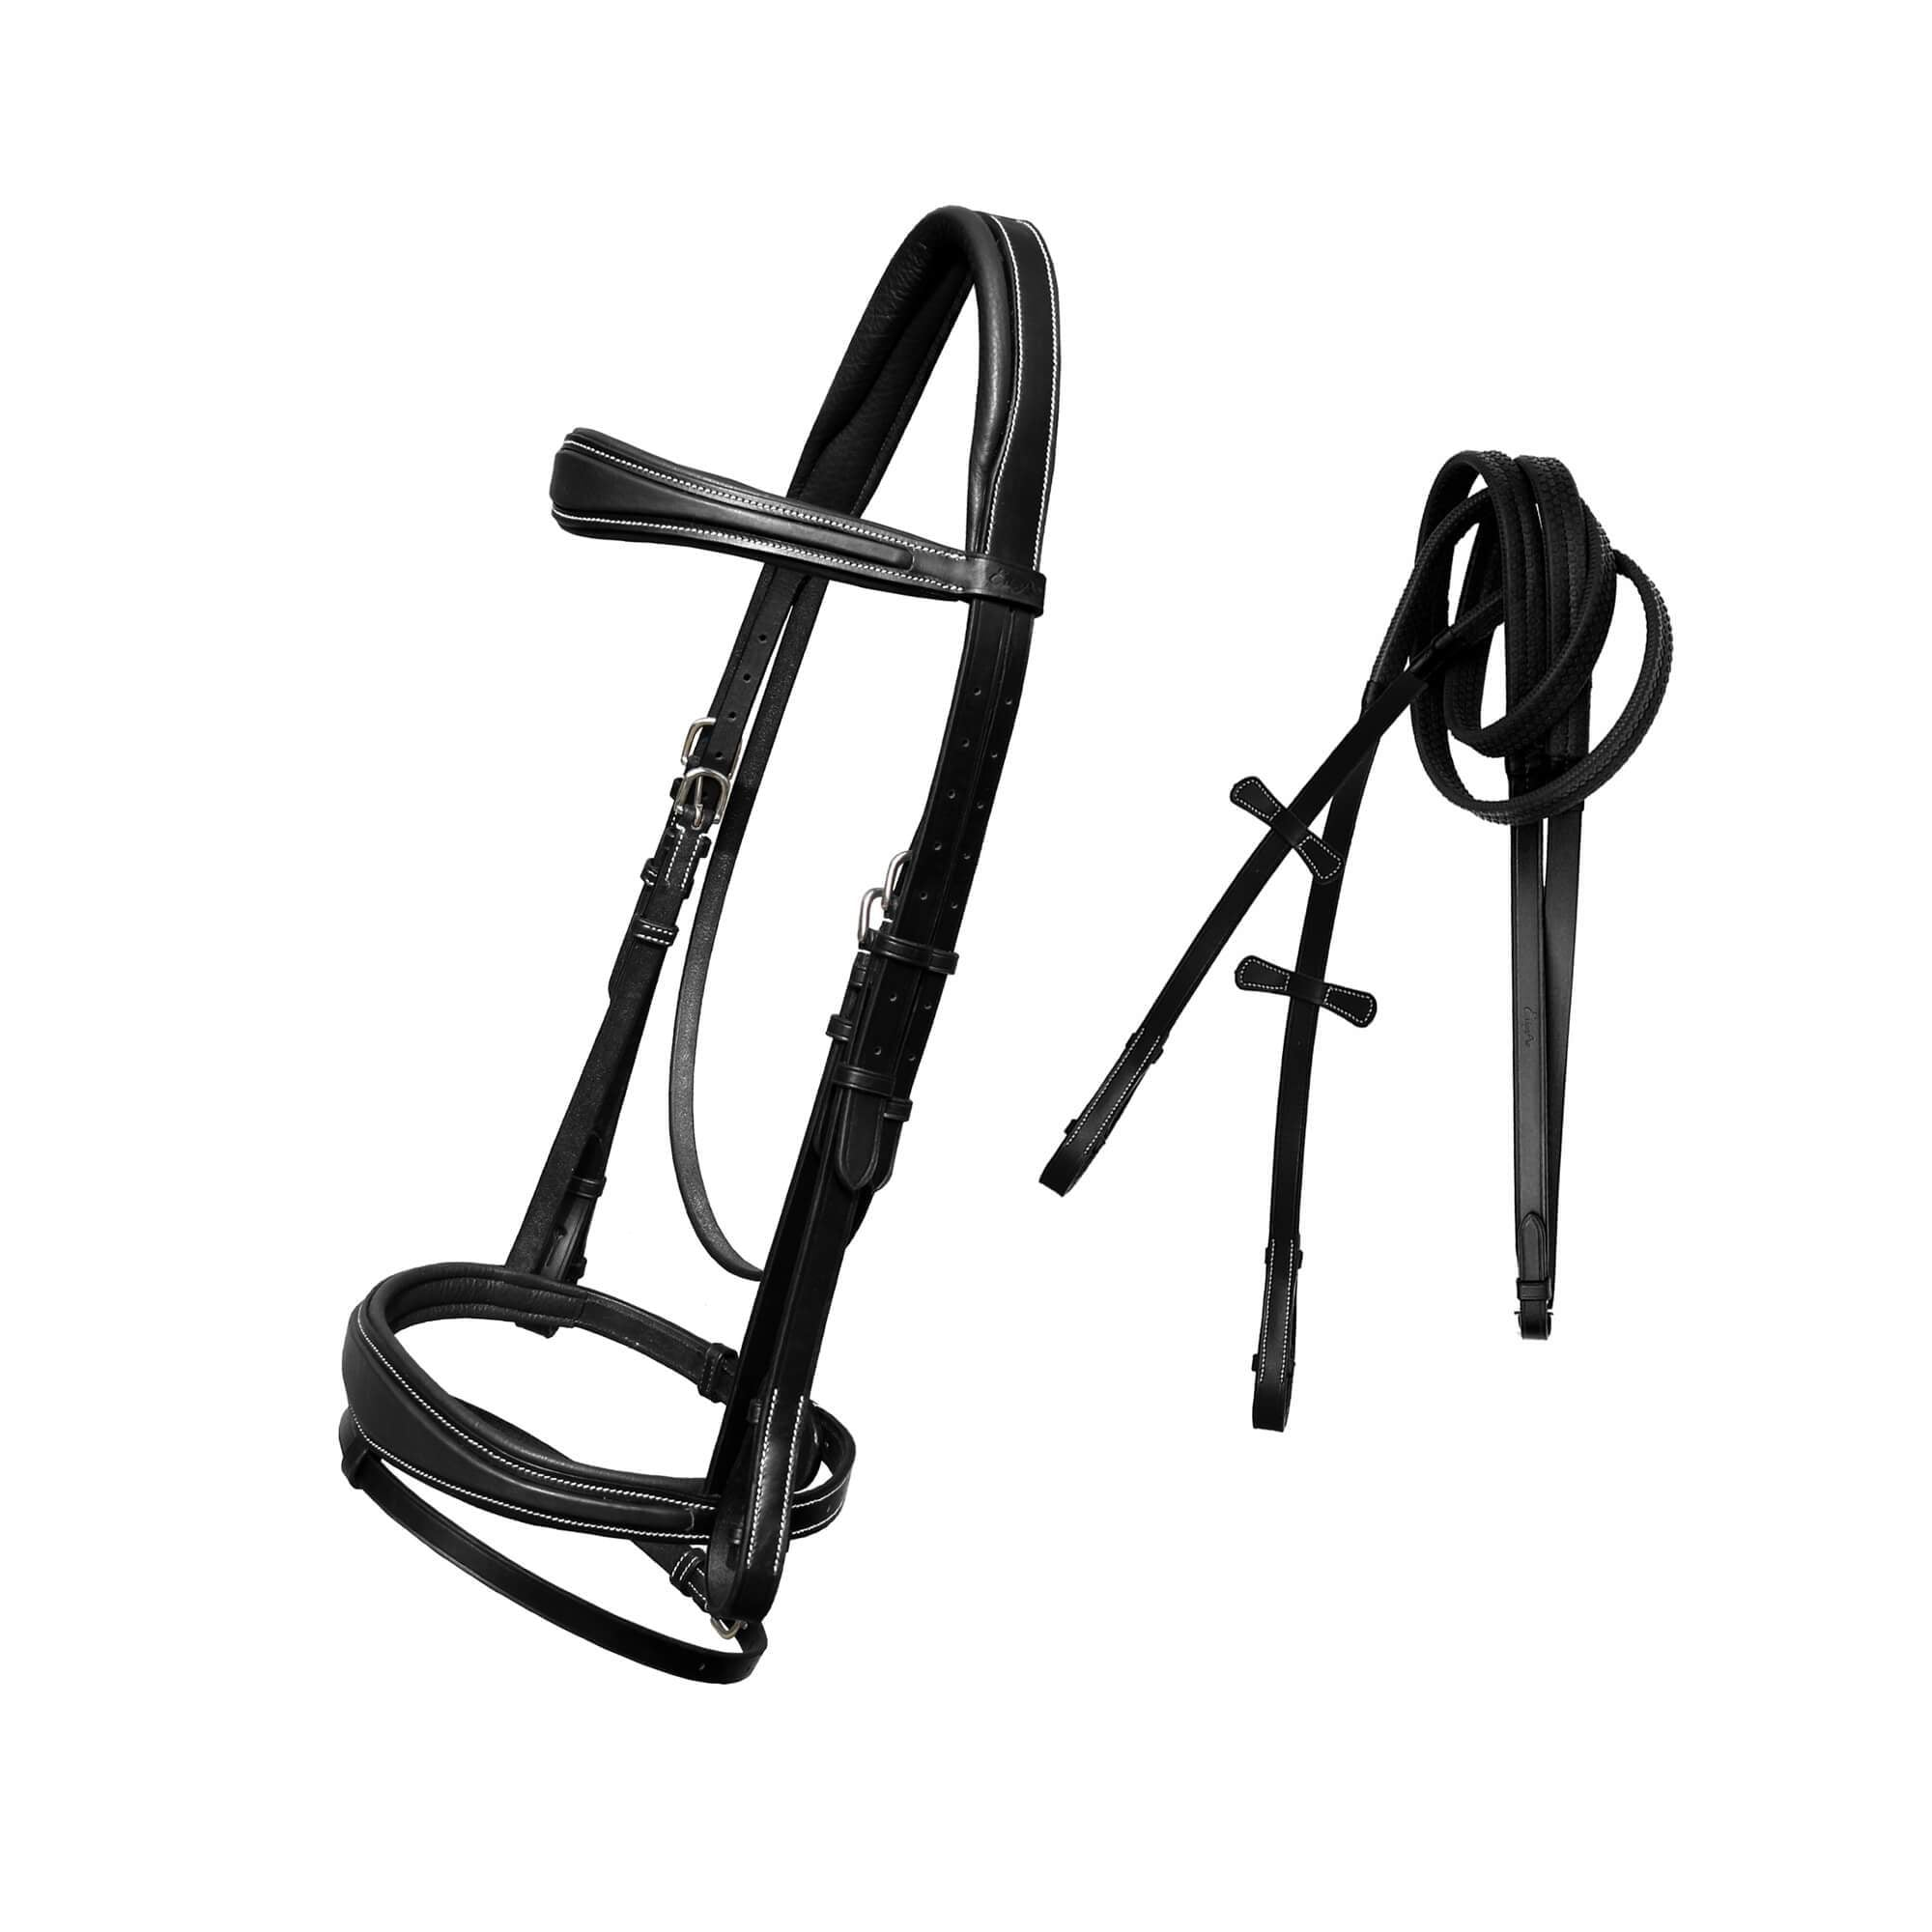 English Bridles-ExionPro Soft Raised Anatomical Bridle with Rubber Reins-Bridles and Reins